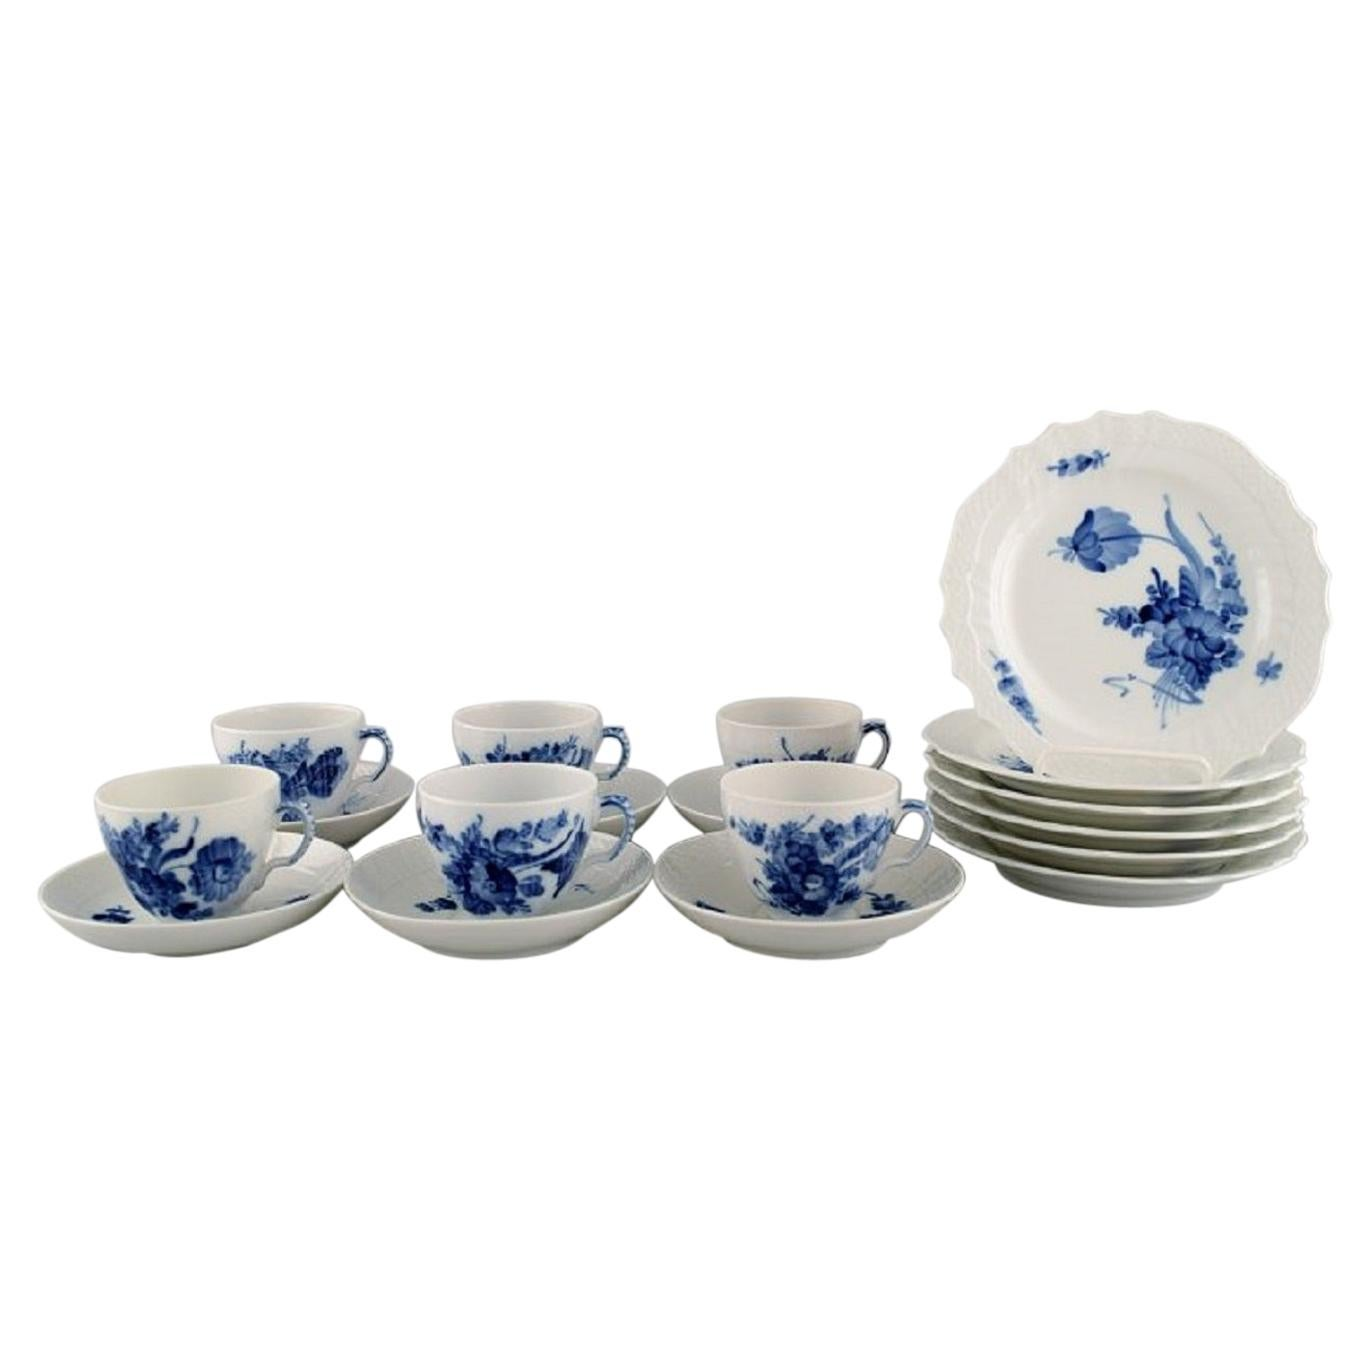 Royal Copenhagen Blue Flower Curved Coffee Service for Six People, 1960s